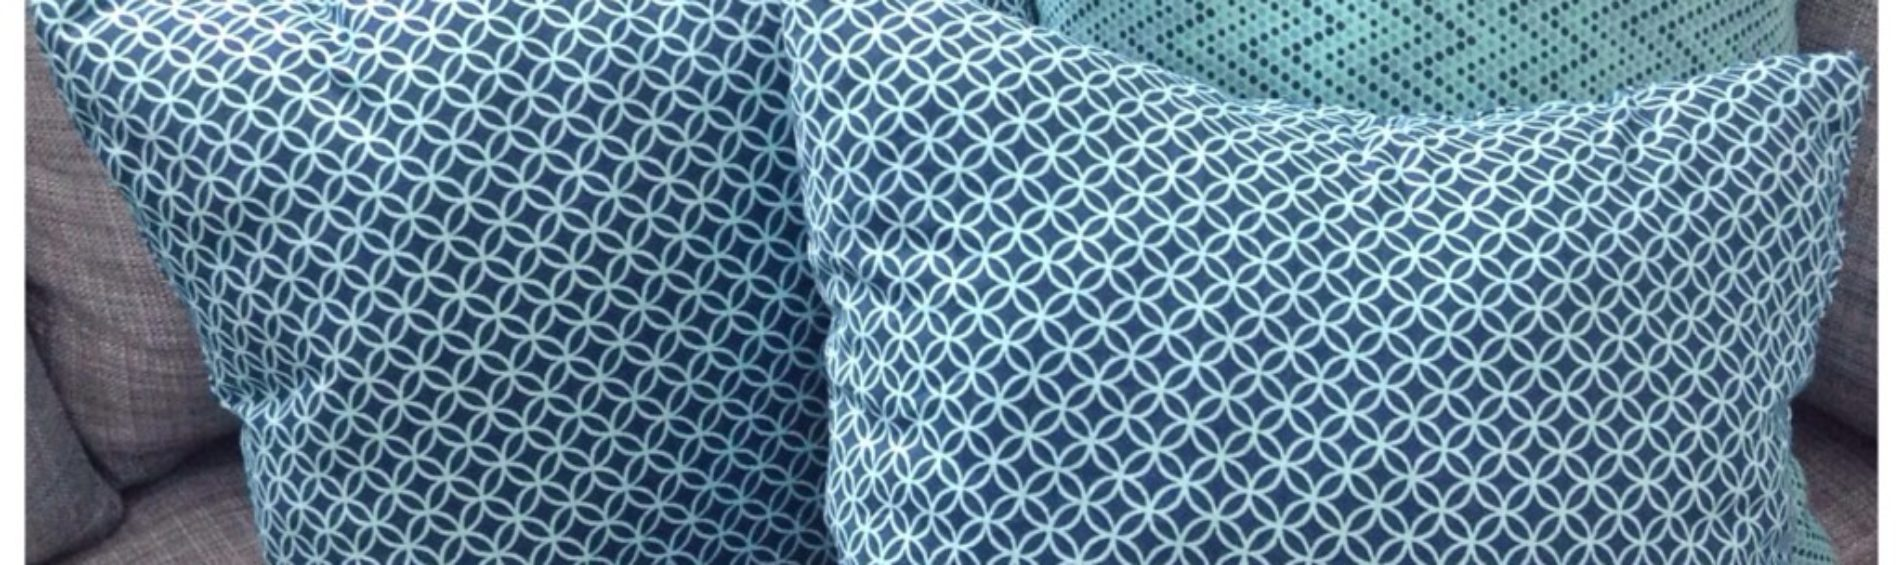 Simple No Sew Pillows